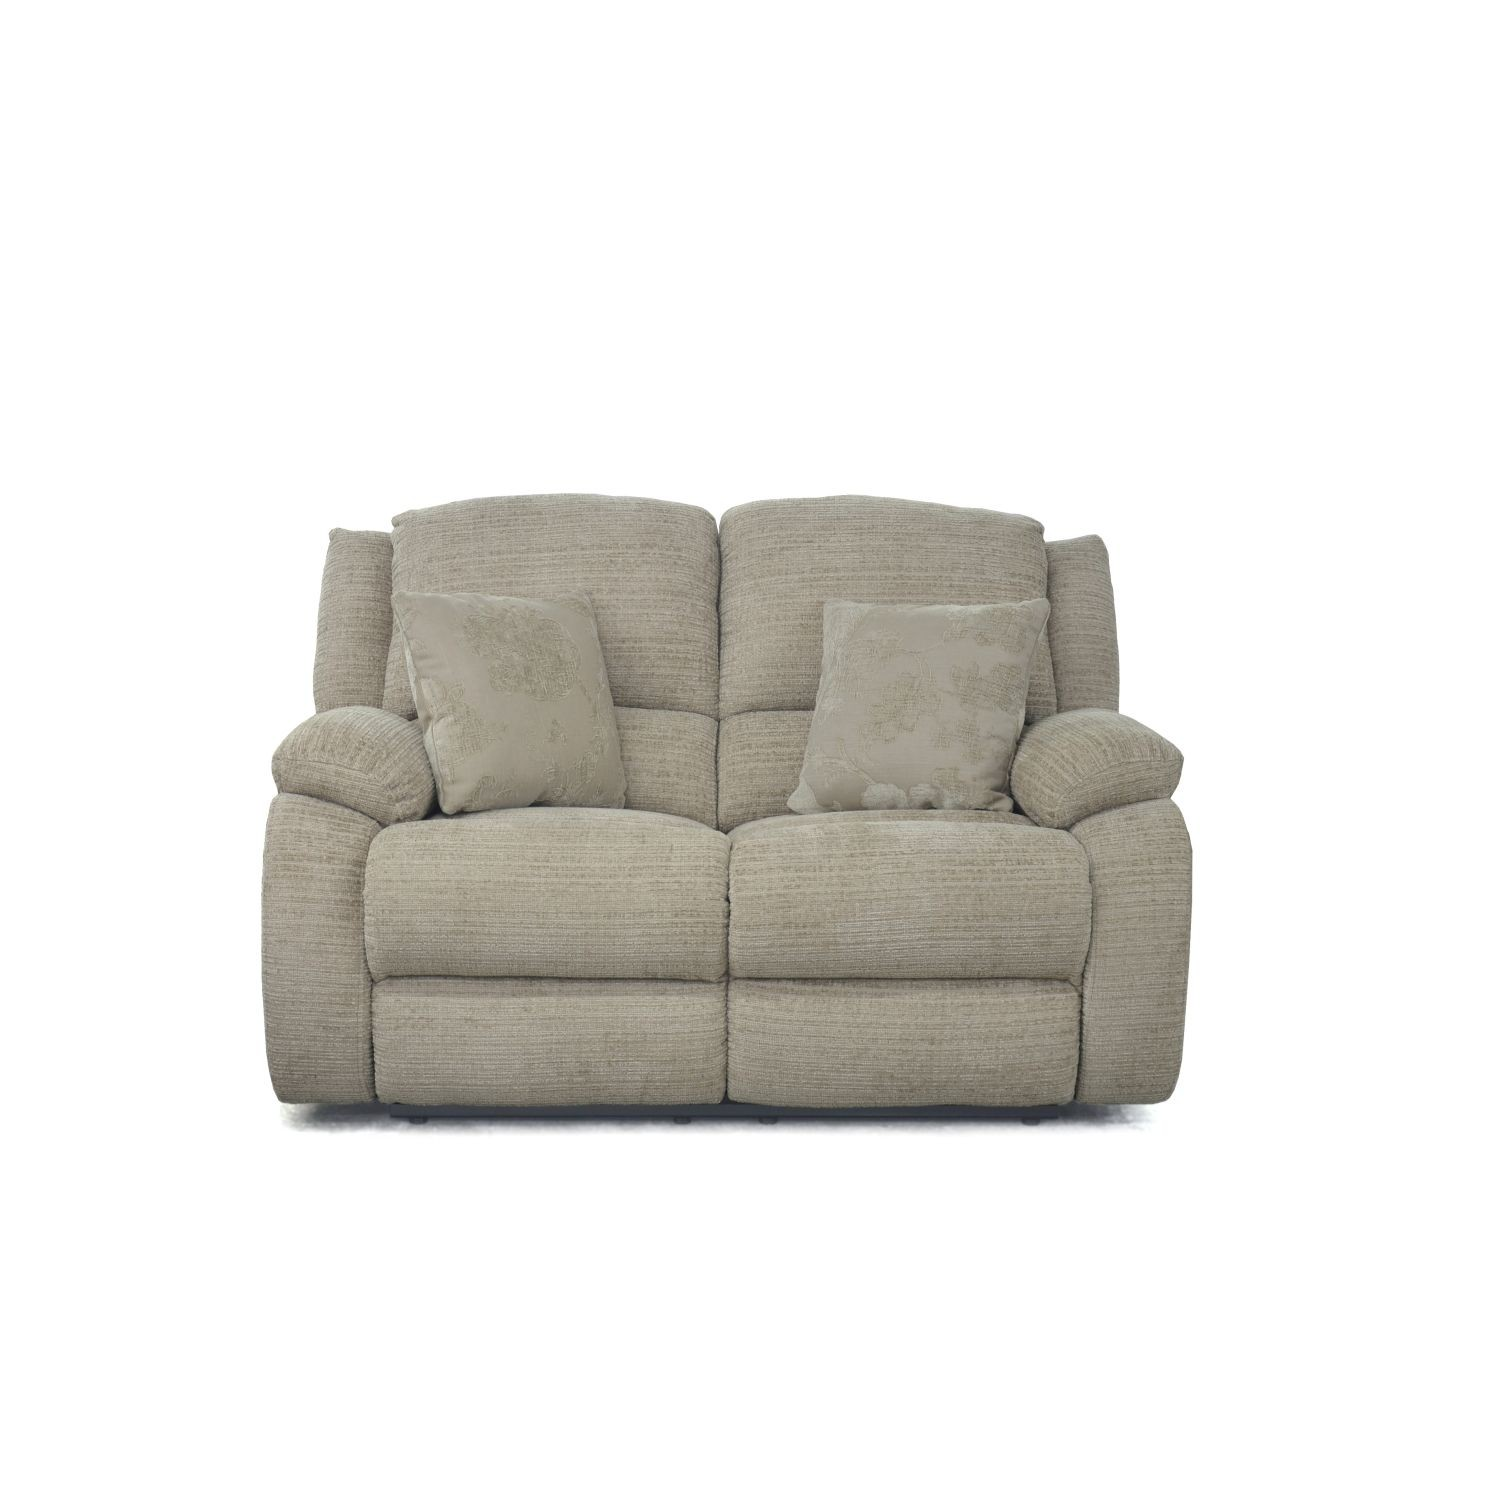 Power recliner sofa henry power recliner sofa power Power reclining sofas and loveseats